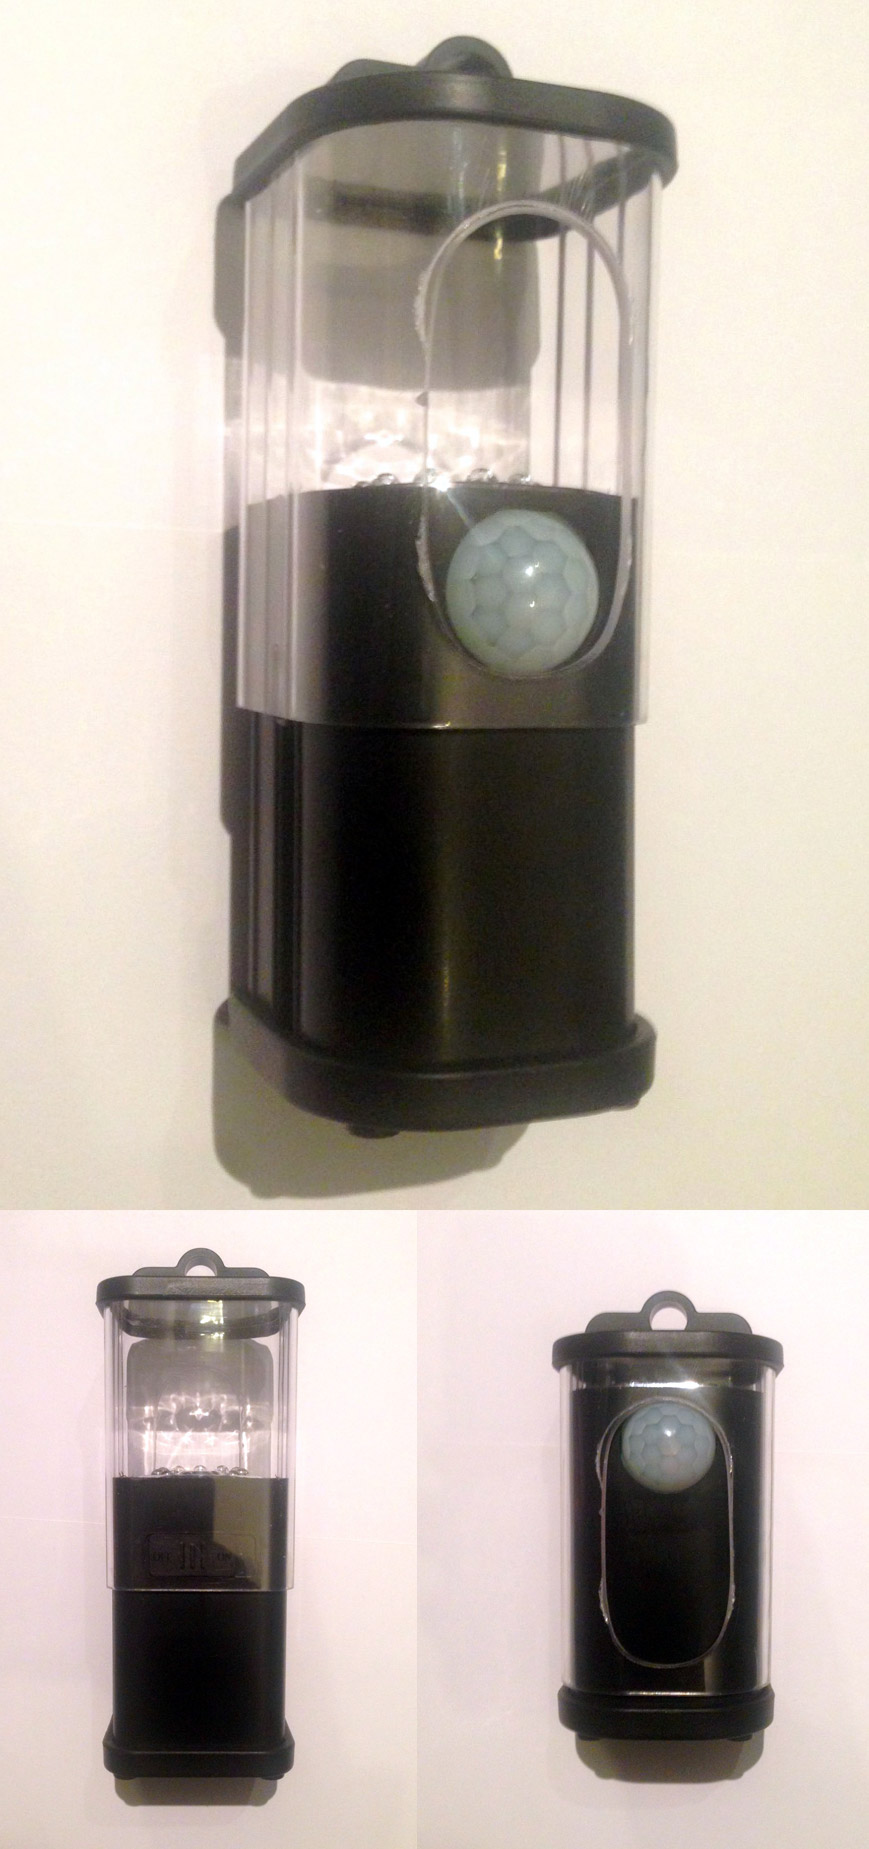 Modified camping lamp